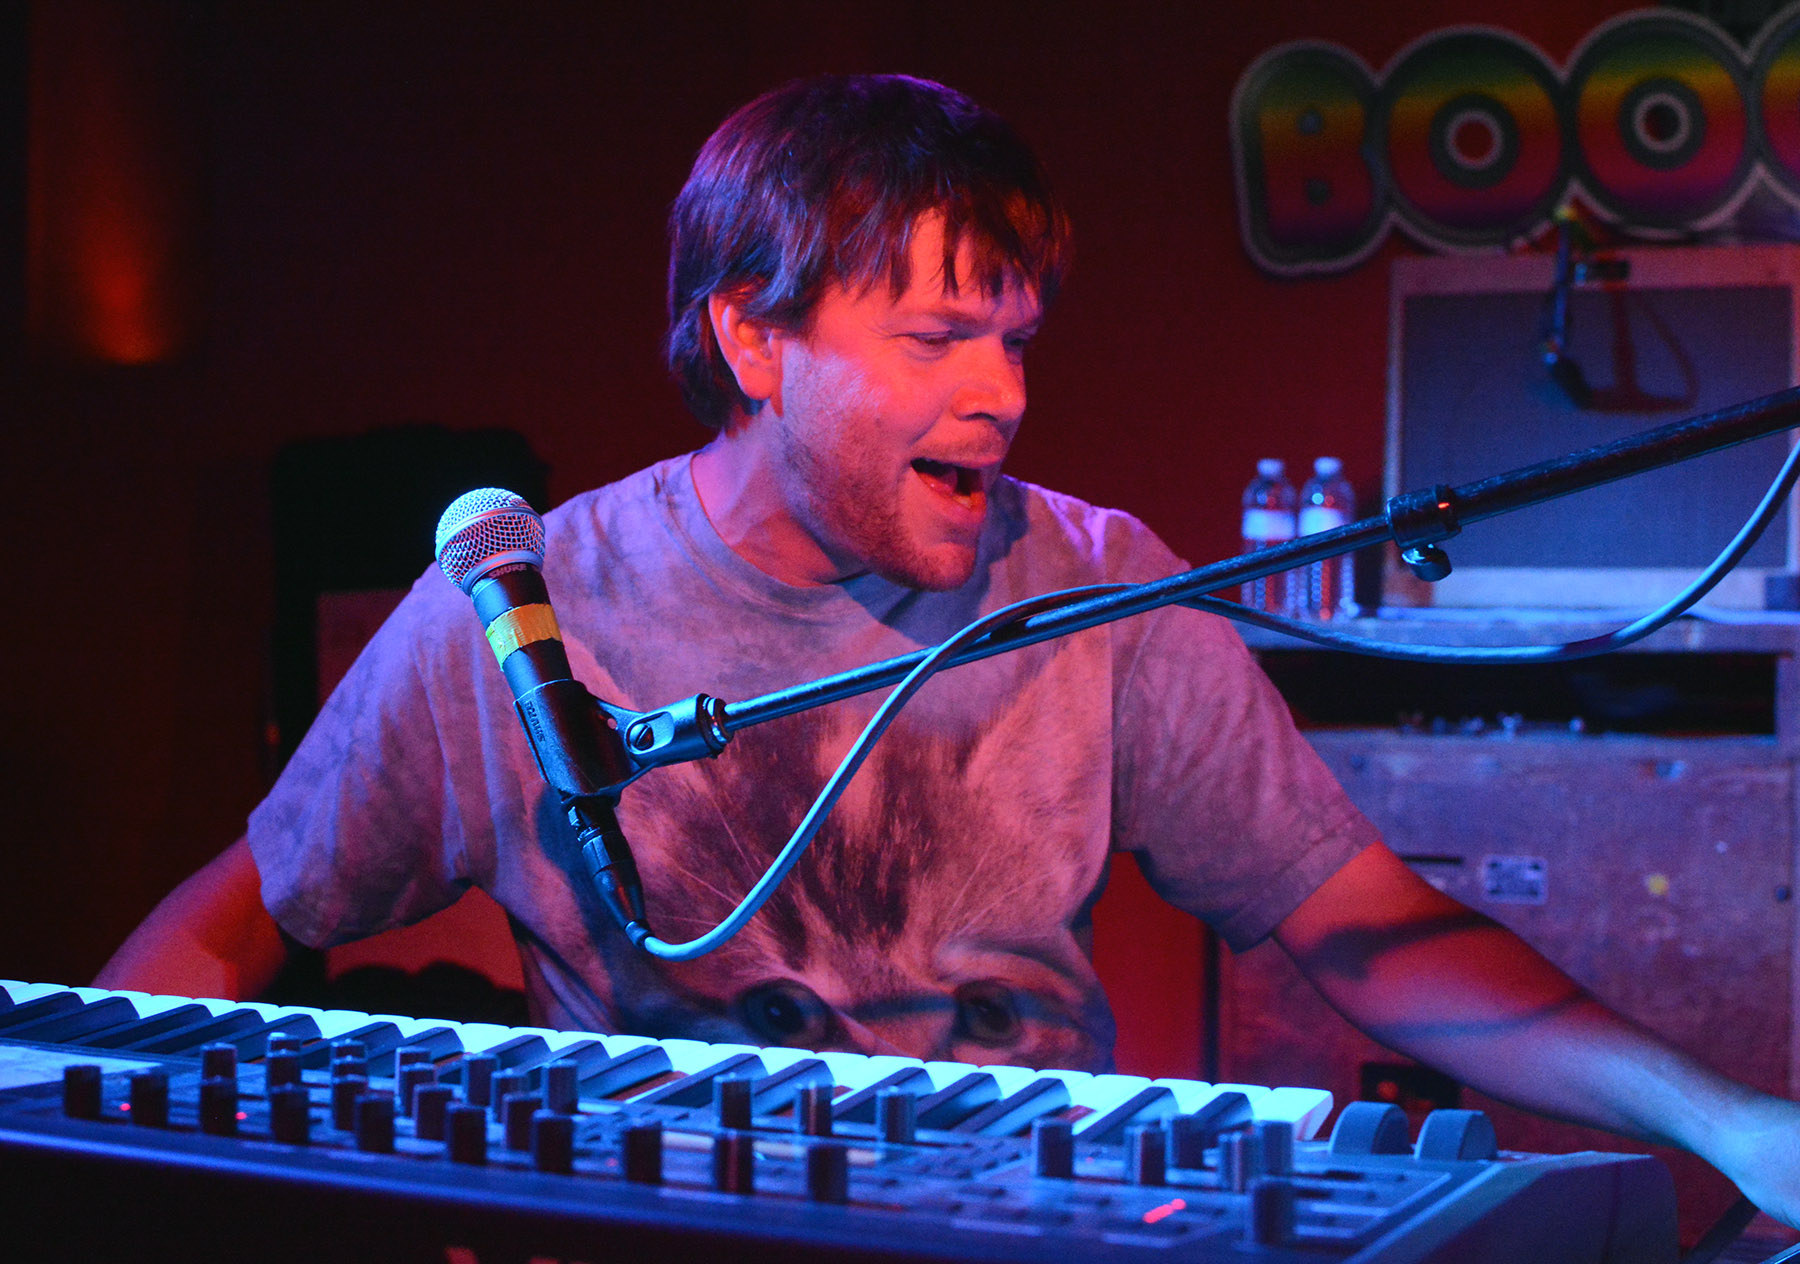 Kyle Hollingsworth at the keyboard during a Sept. 25 show in MontBleu at Lake Tahoe. Tim Parsons / Tahoe Onstage